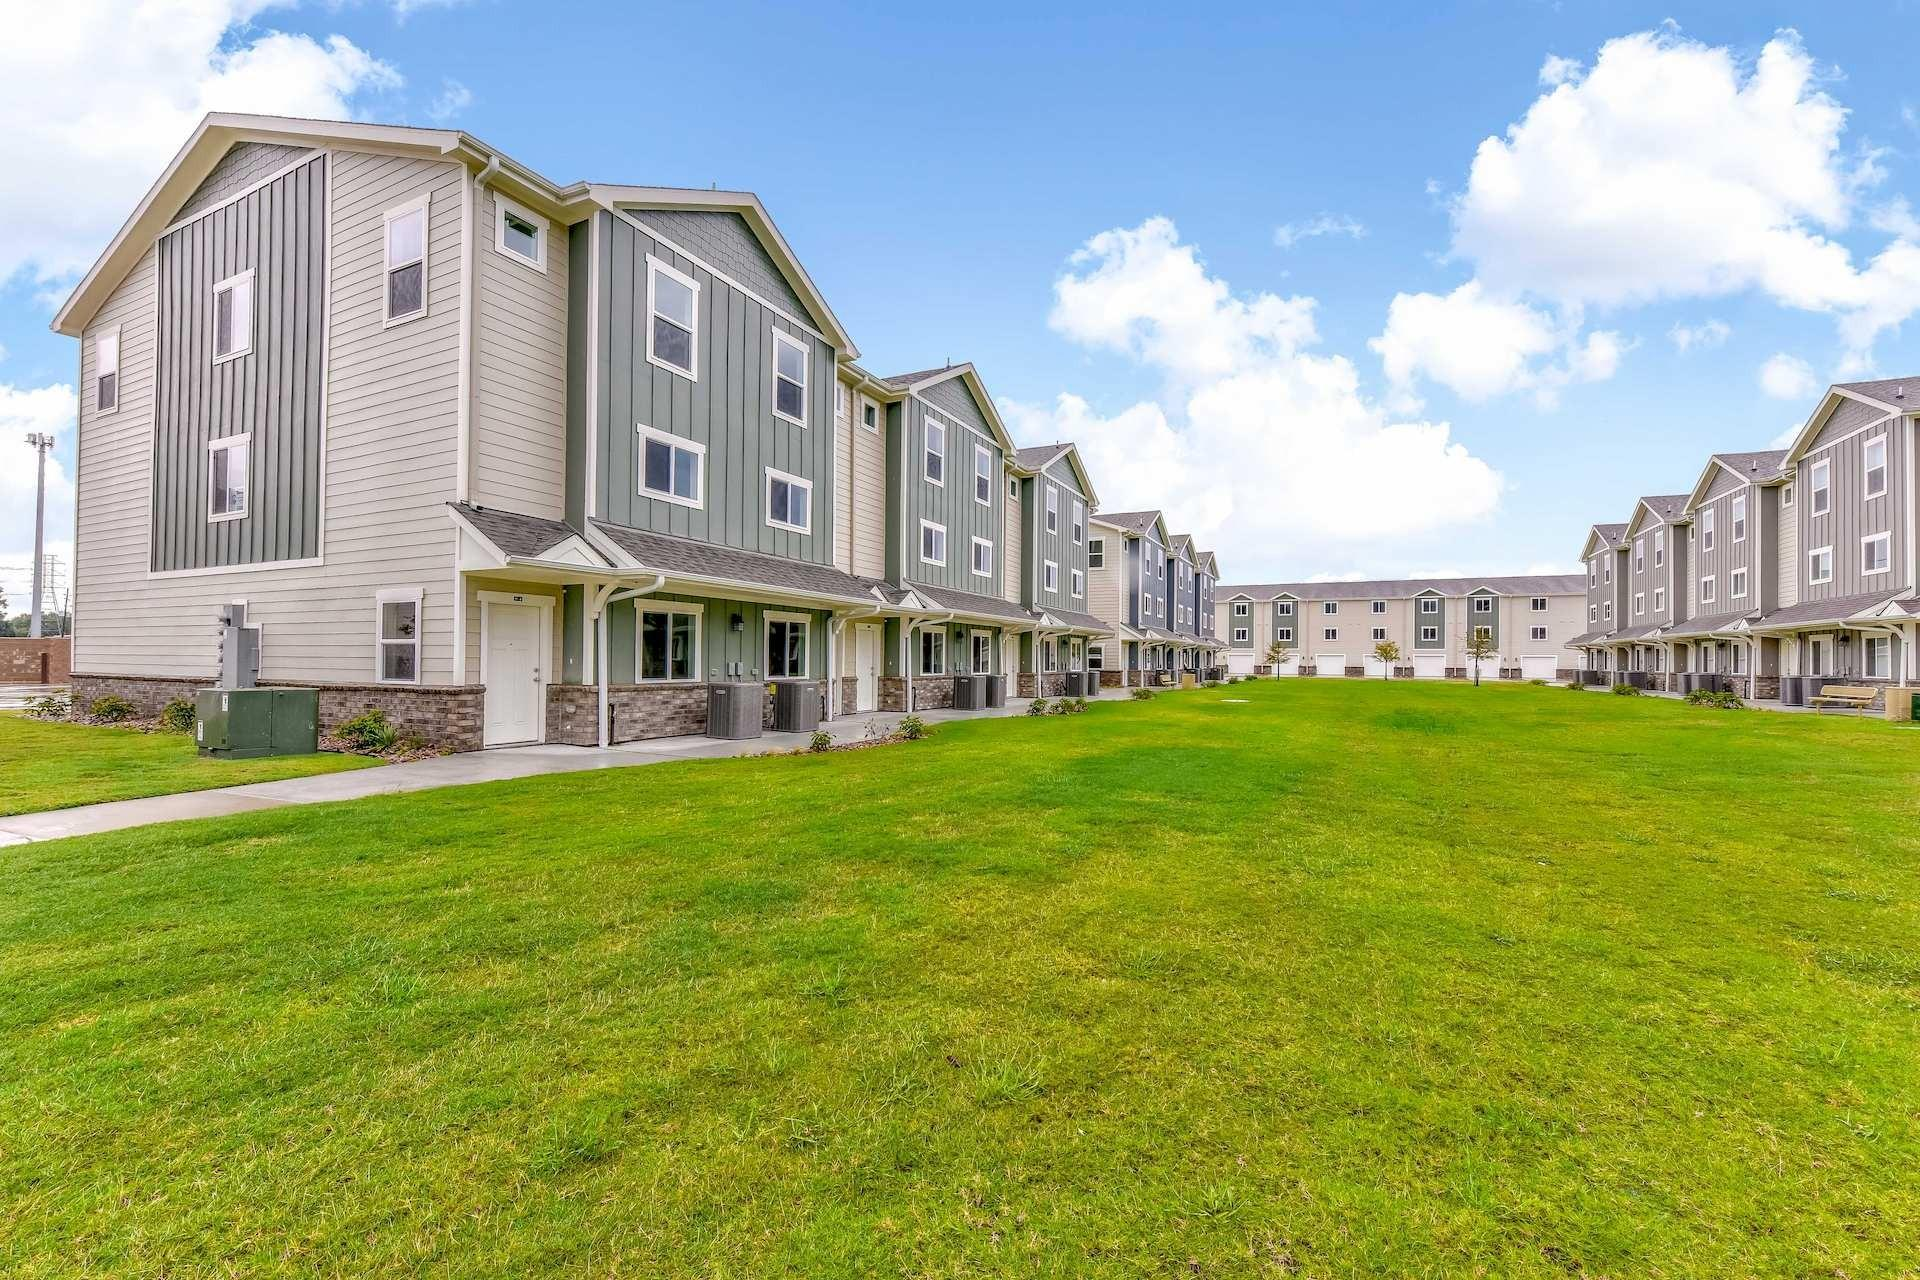 Village at Brickyard, FIG multifamily